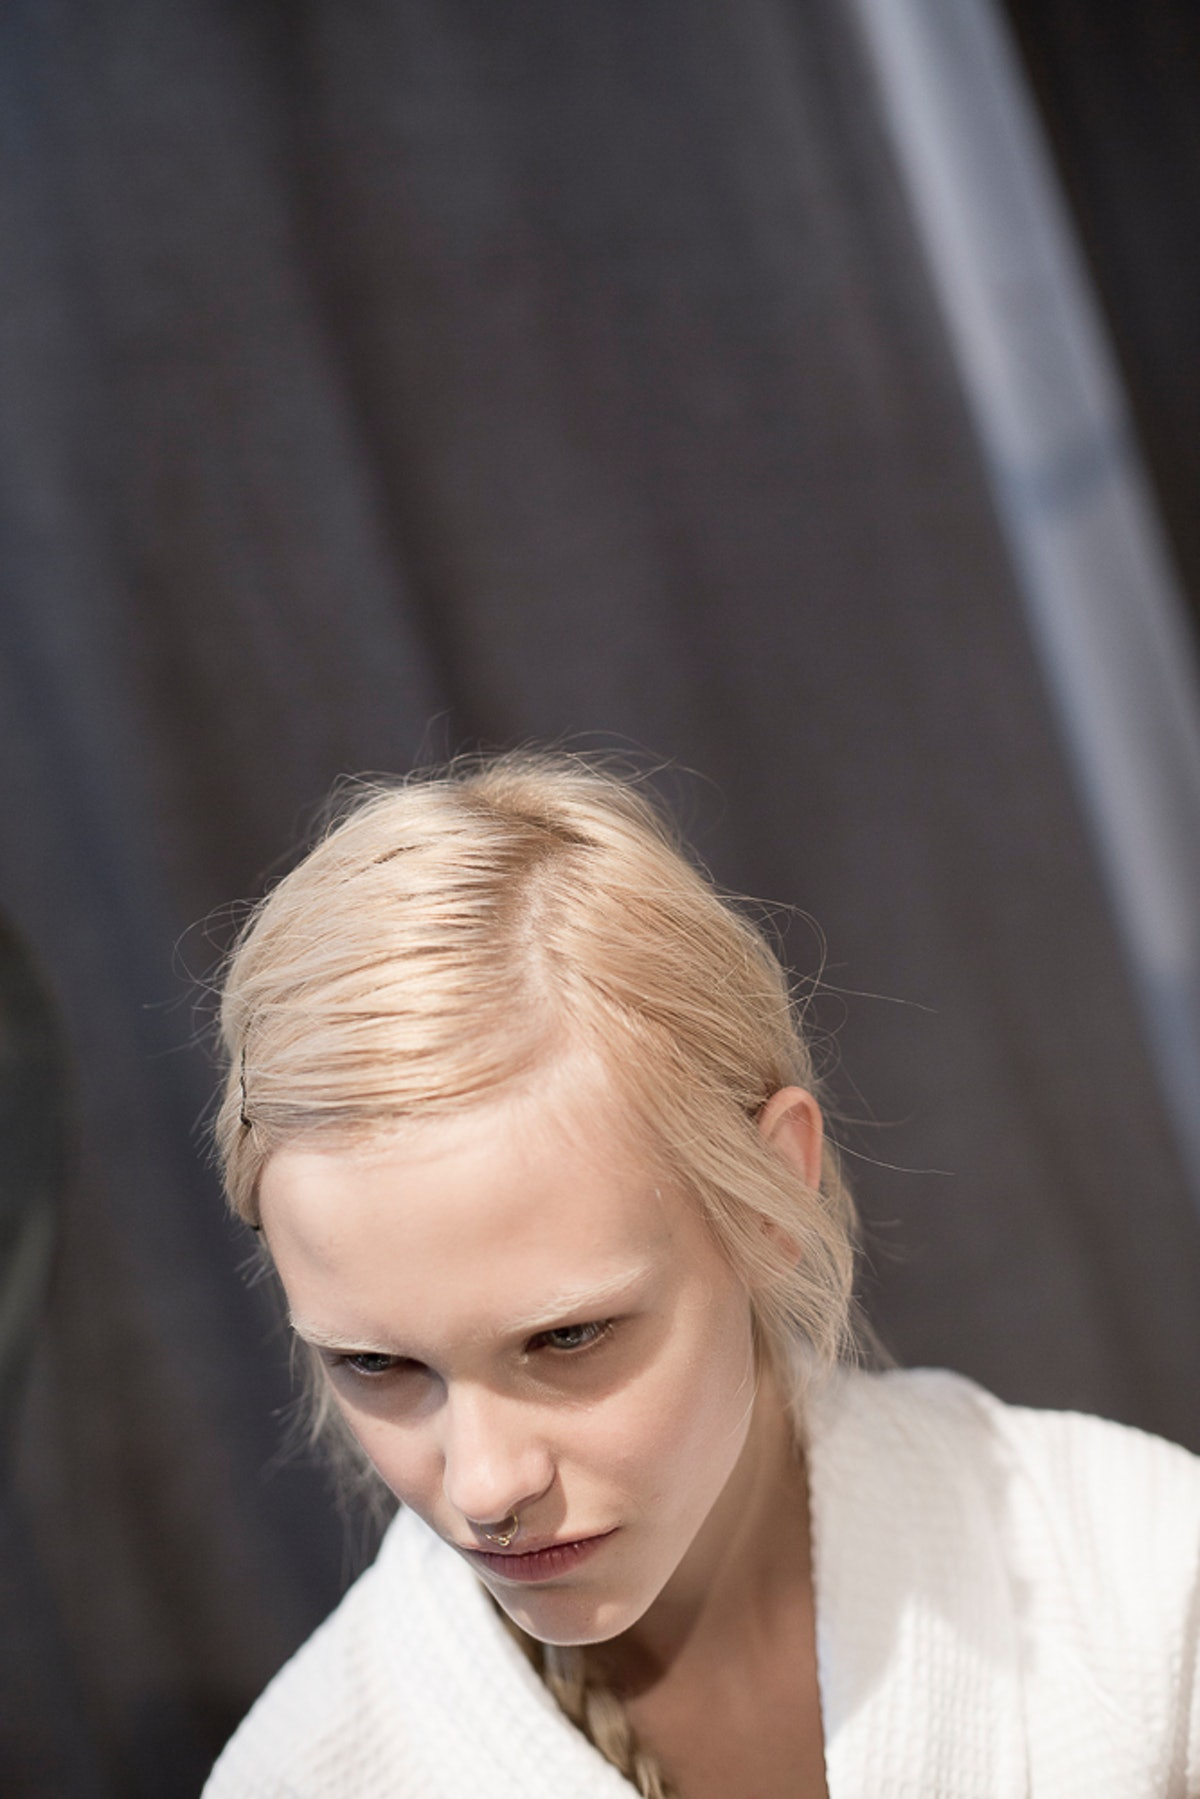 Backstage at Gucci Spring 2016